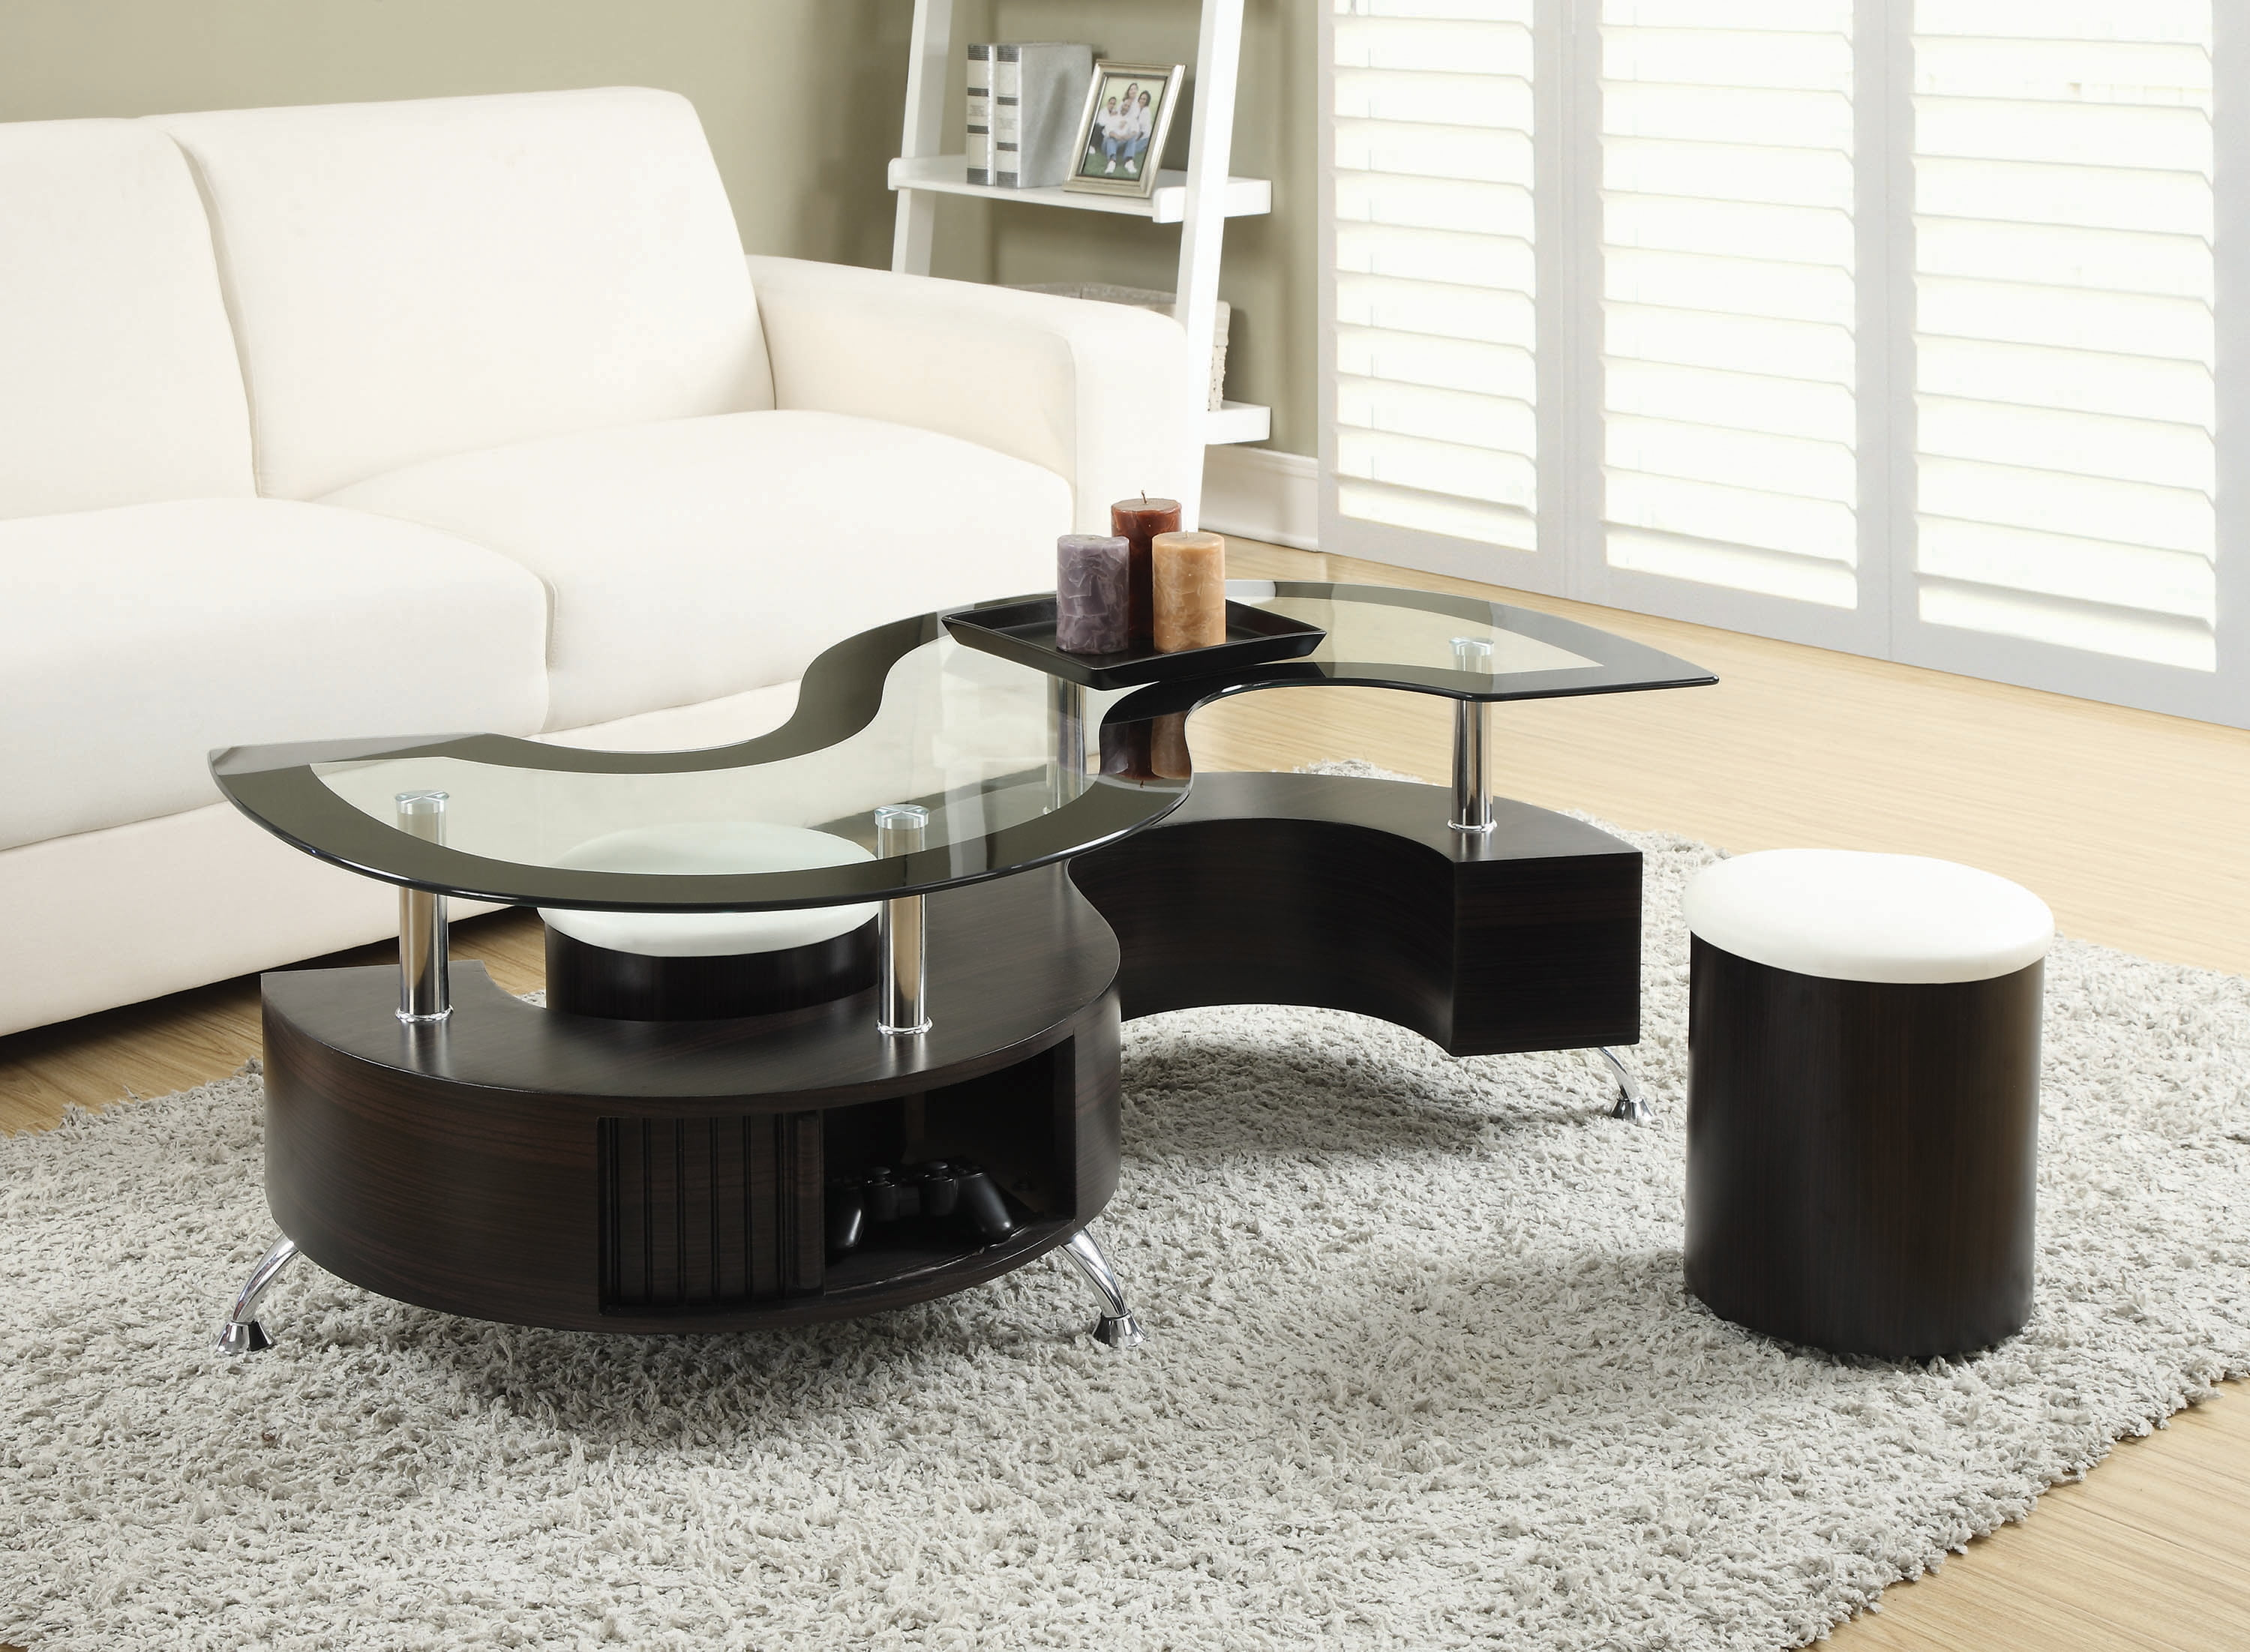 3 Piece Coffee Table And Stools Set Cappuccino Walmart Com Walmart Com